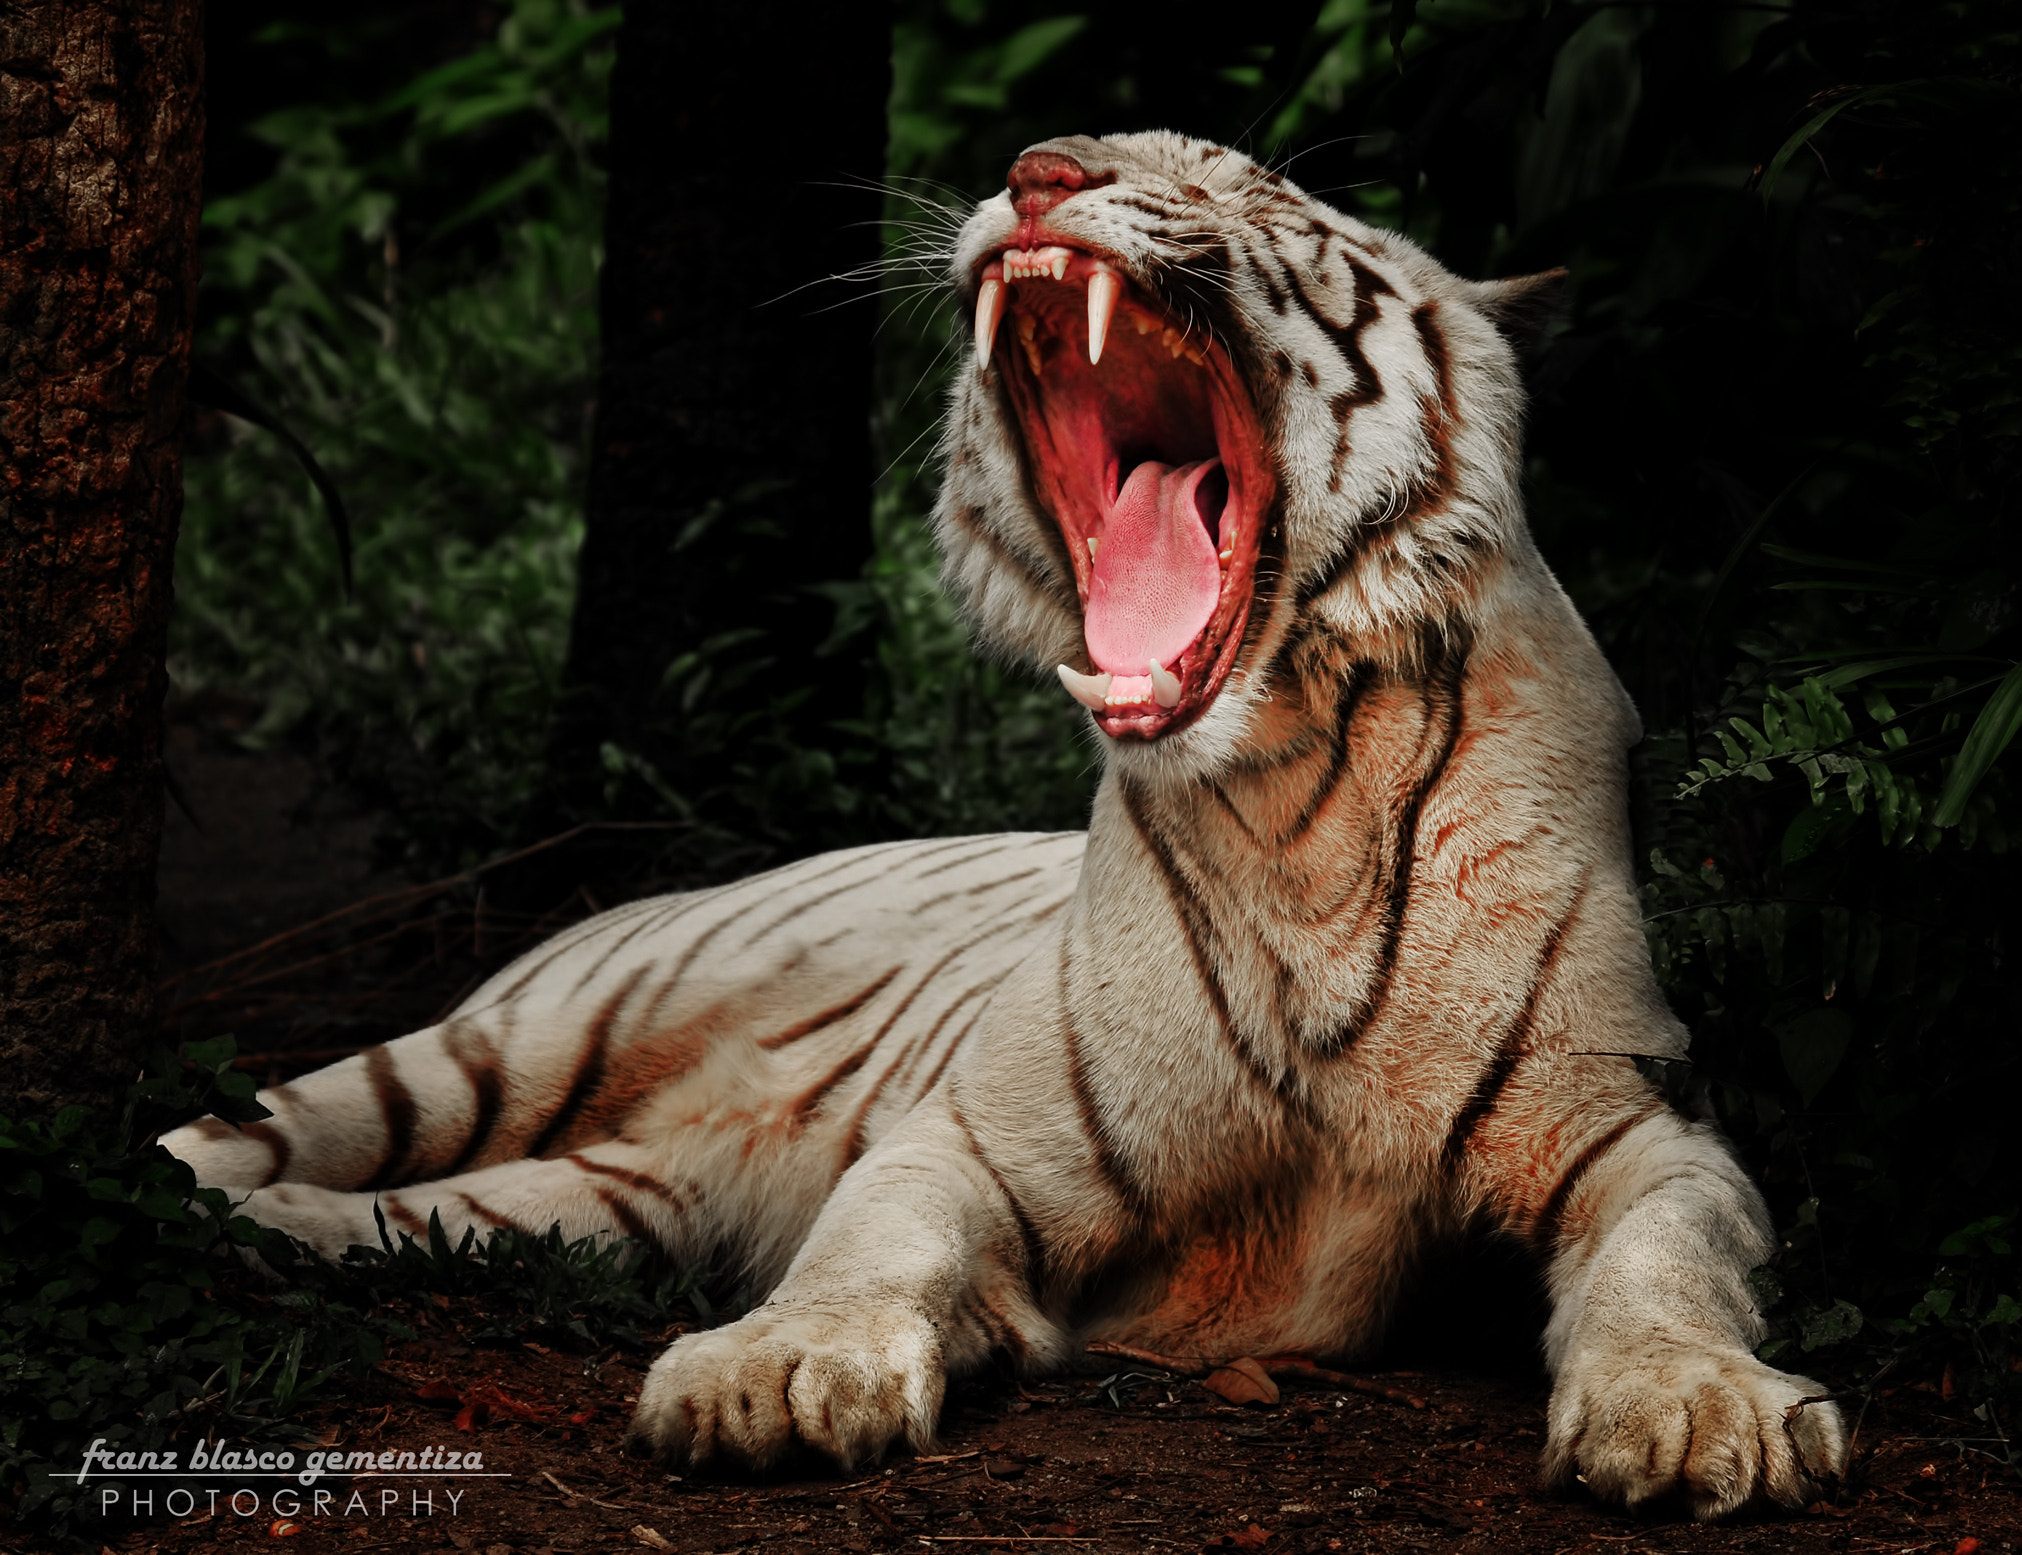 Photograph 1-800-FANGS by Franz Gementiza on 500px